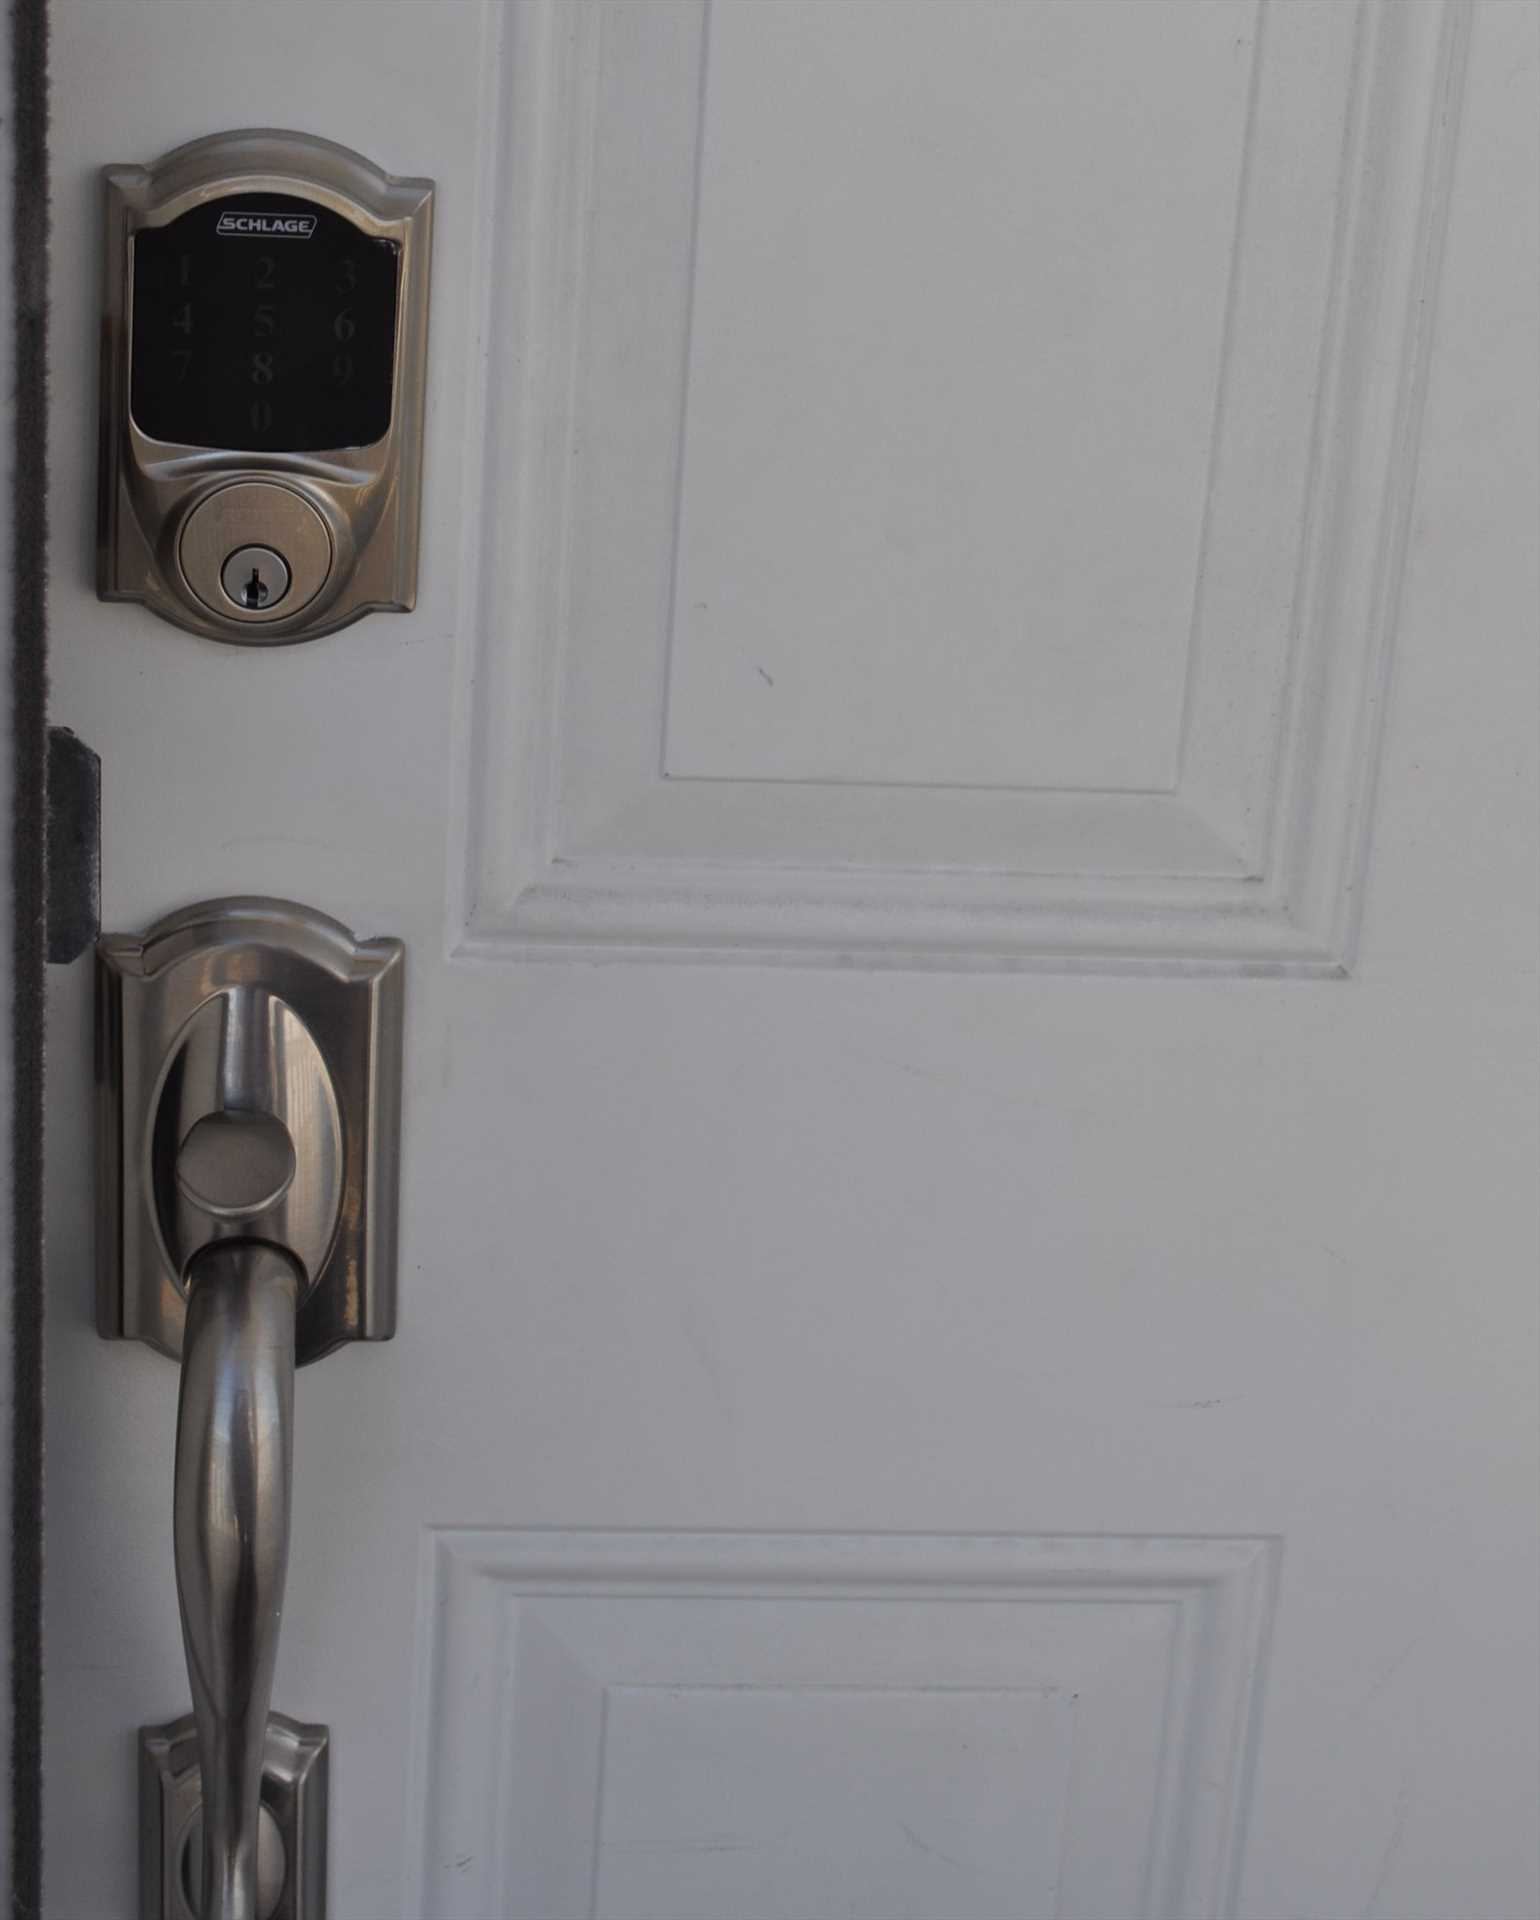 Electronic Entry lock